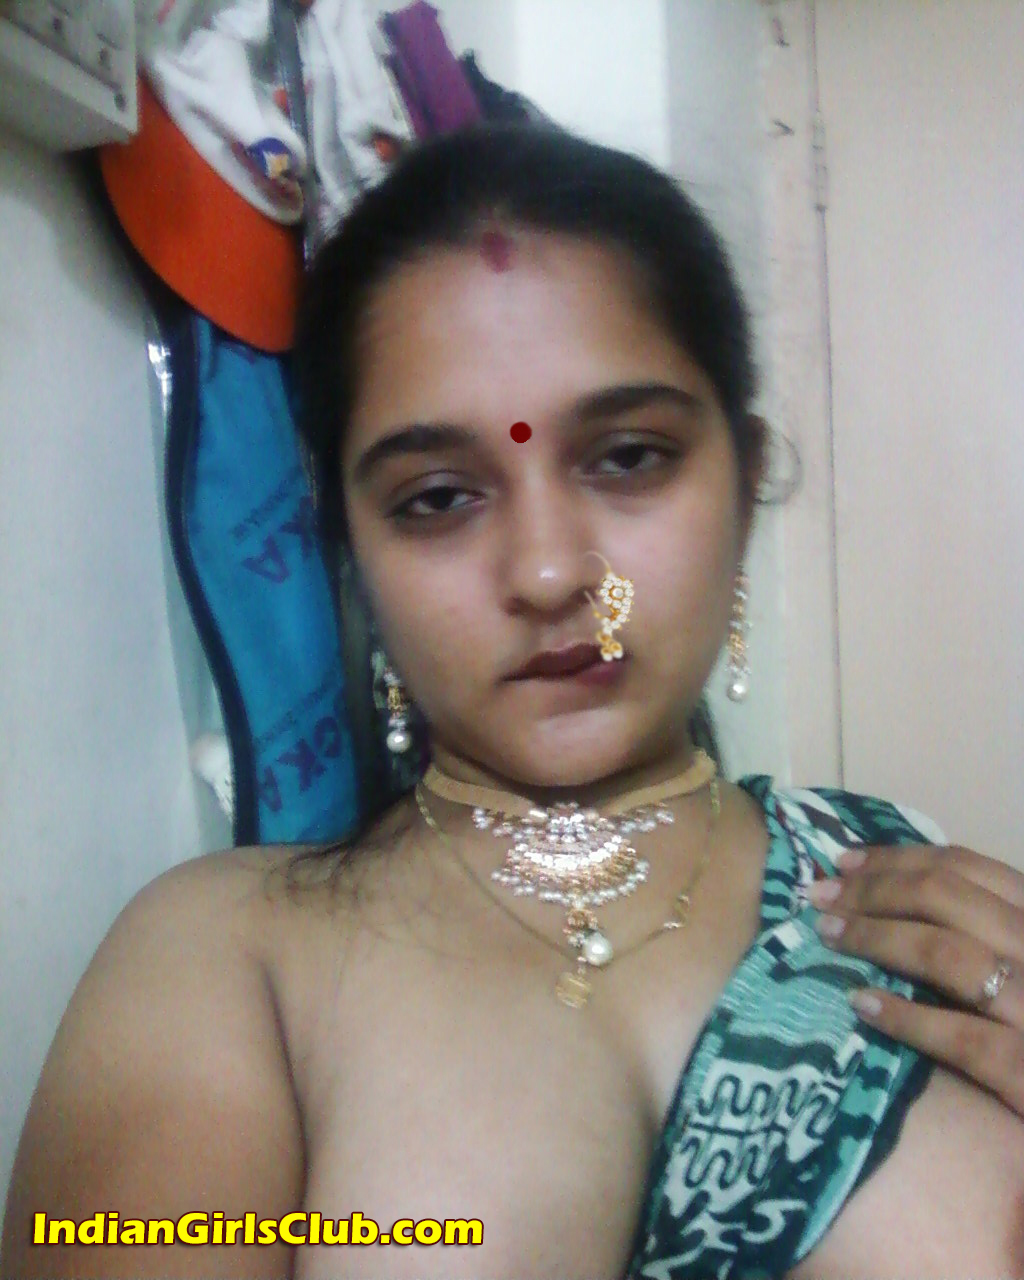 cute indian girl nude b4 - indian girls club - nude indian girls